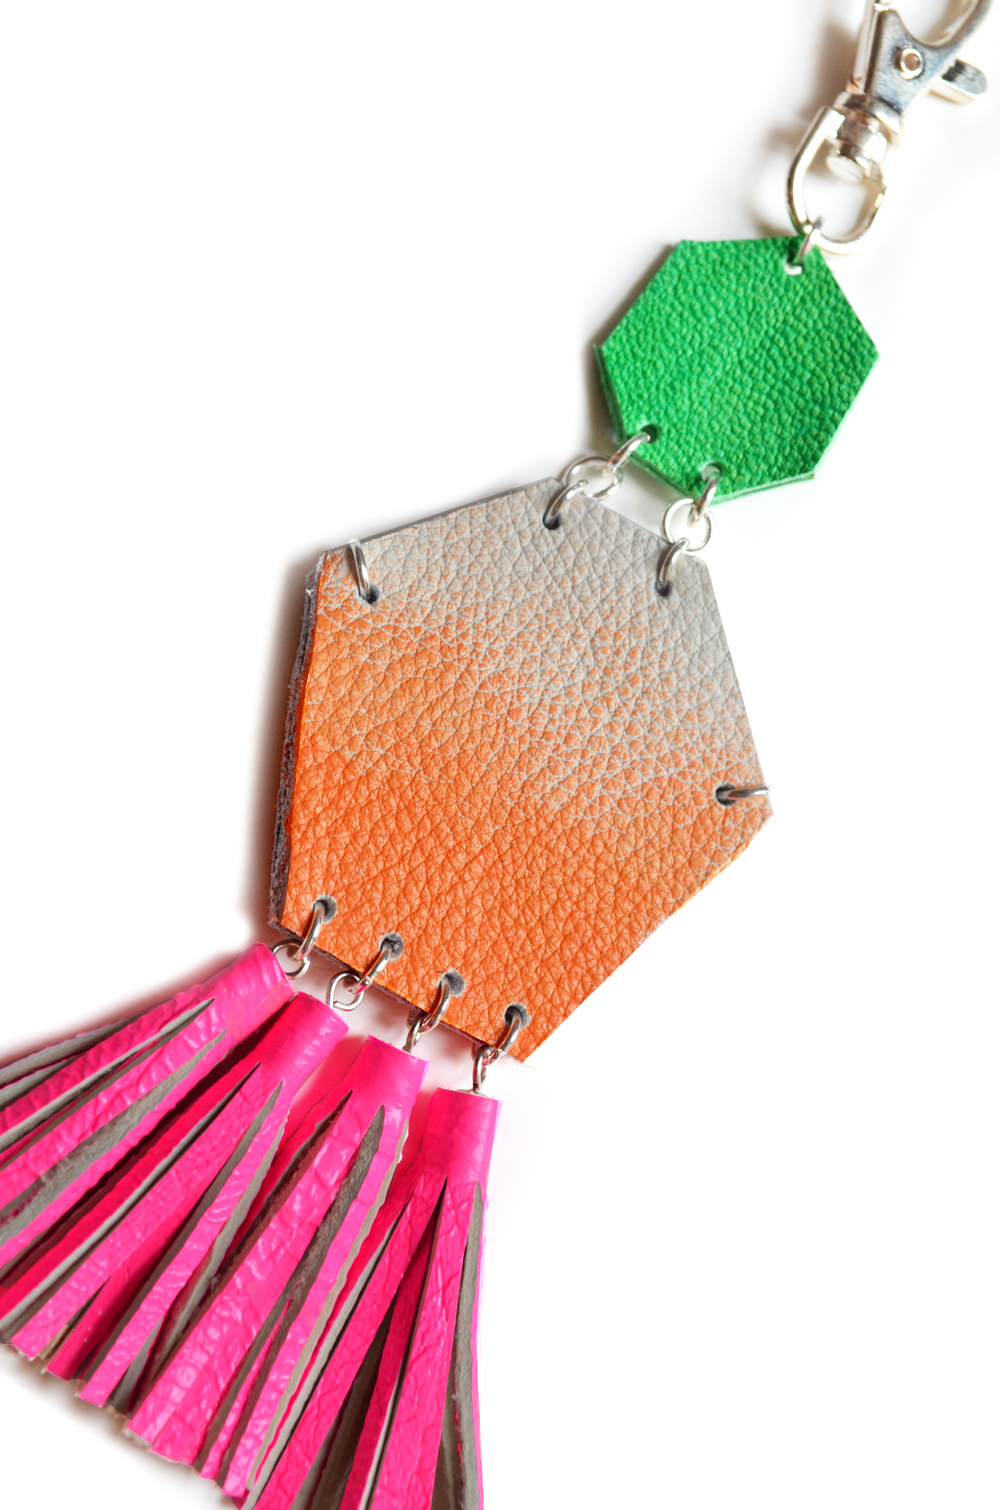 Hot Pink Key Chain, Unique Leather Tassel Key Chain, Neon Fringe Purse Clip, Orange Ombre and Green Leather Key Fob, Leather Accessories 4.jpg